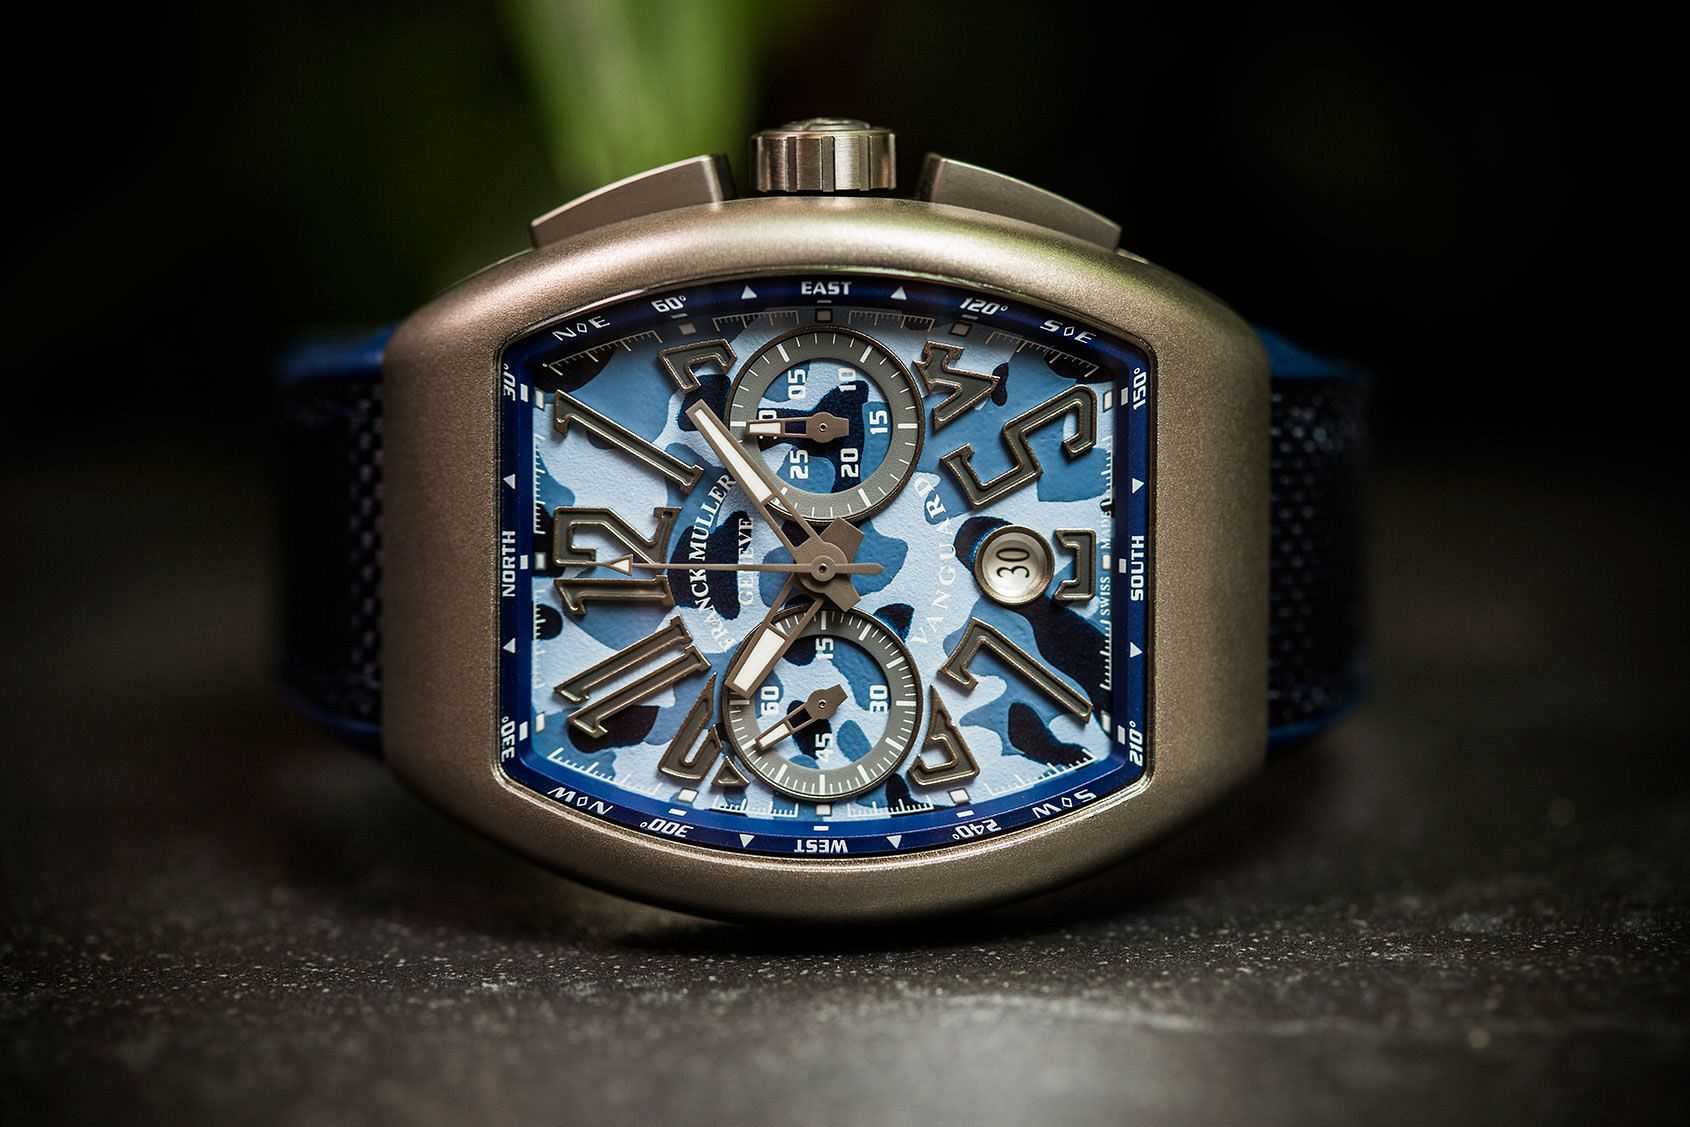 Franck Muller Vanguard Chronograph Camouflage Blue replica